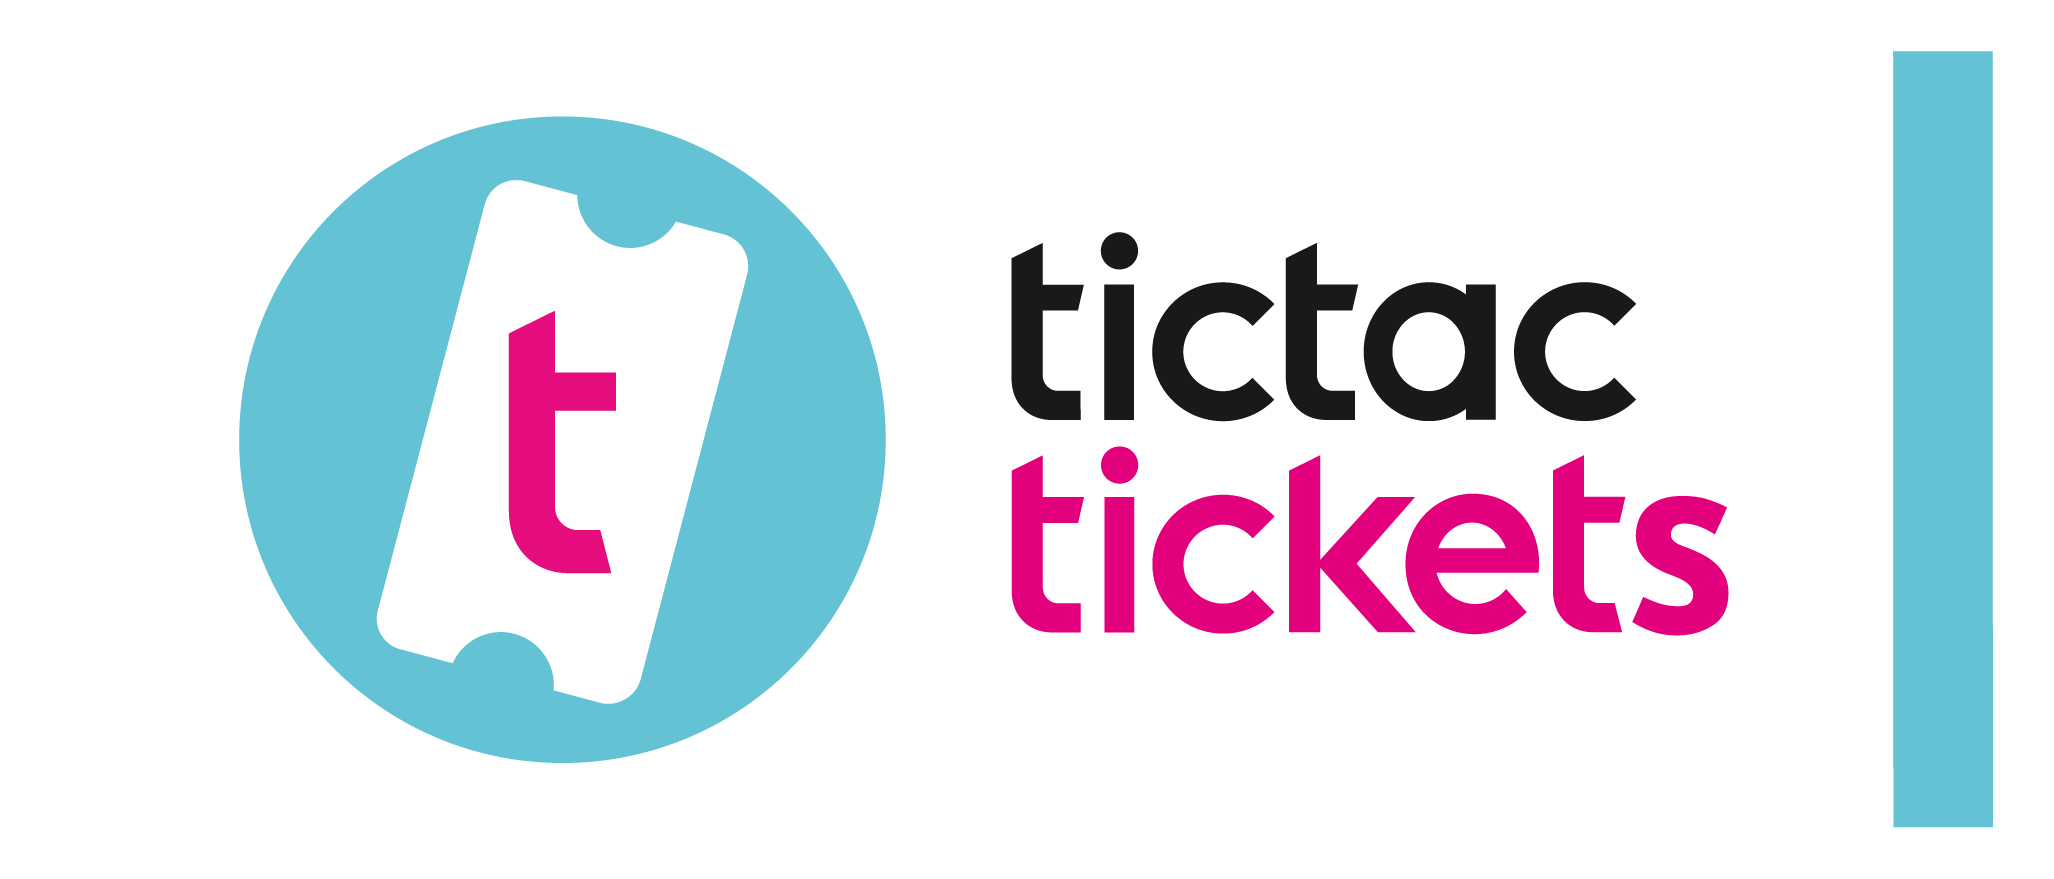 https://tictactickets.com